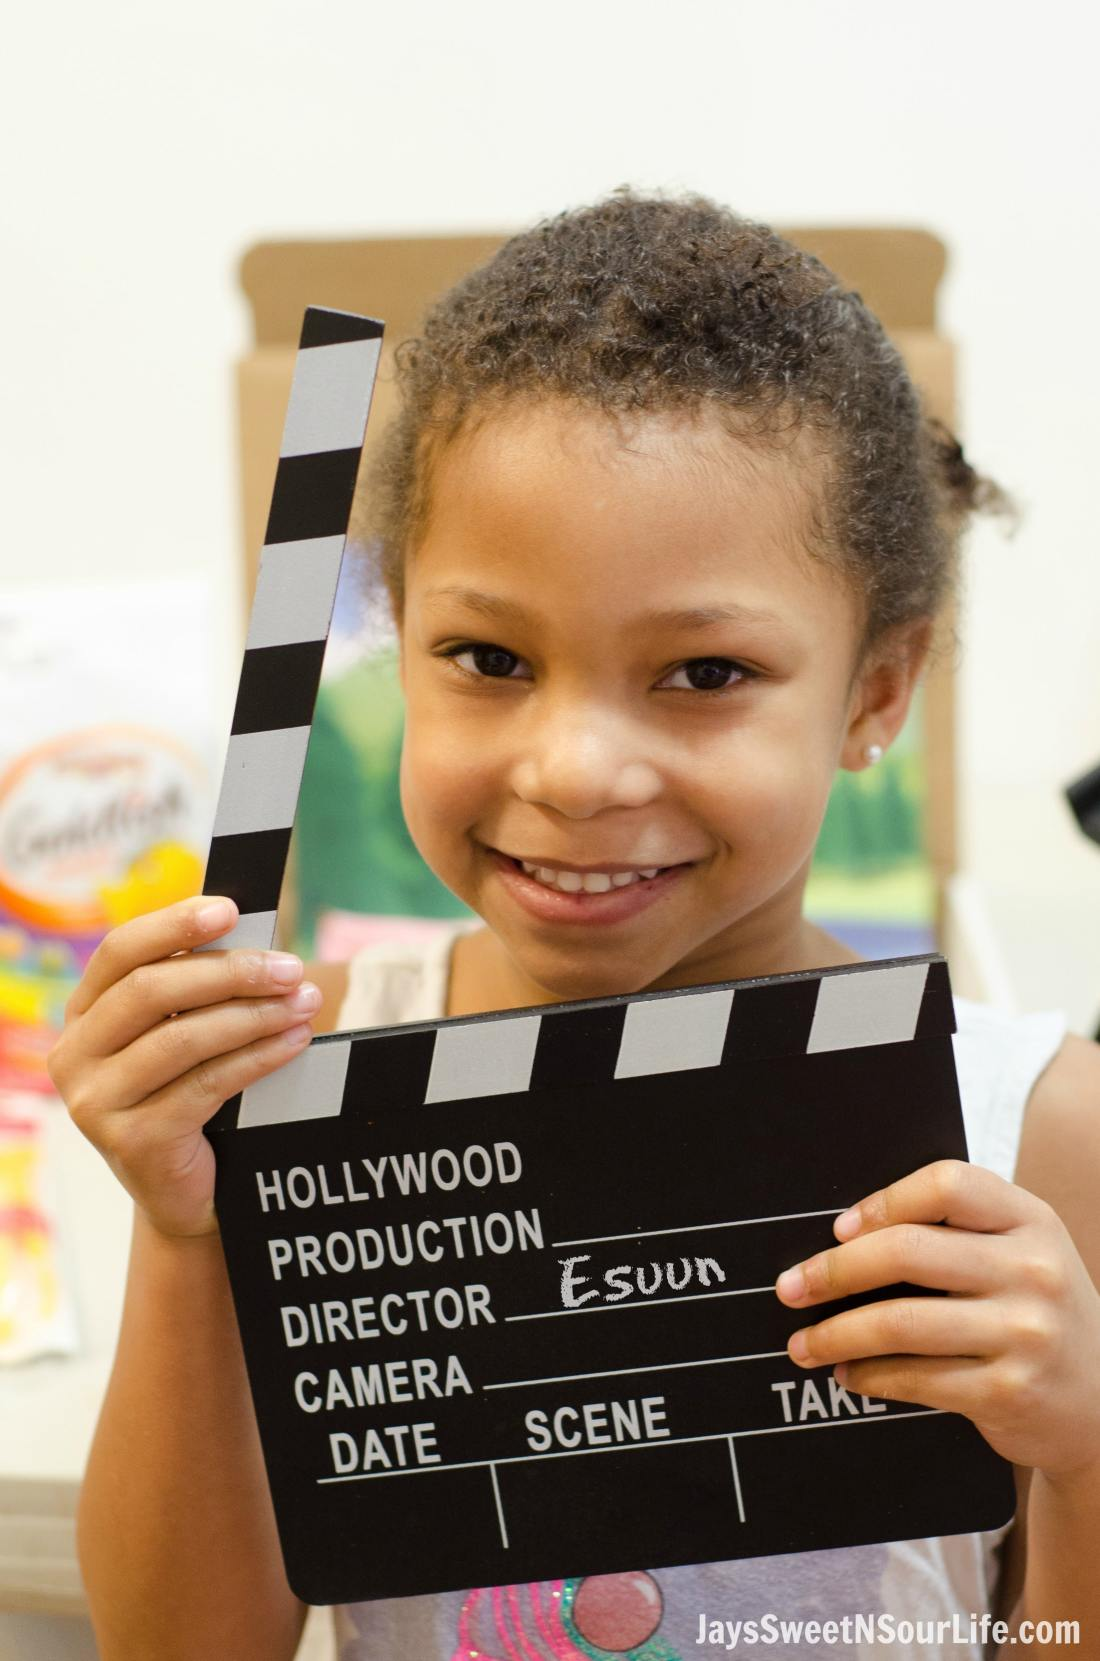 Creating Goldfish Tales with your kids are a fun way to spend your afternoons together. Create a stop motion video and share your families story. Make sure to yell action every time you are ready to take the next photo in your video.